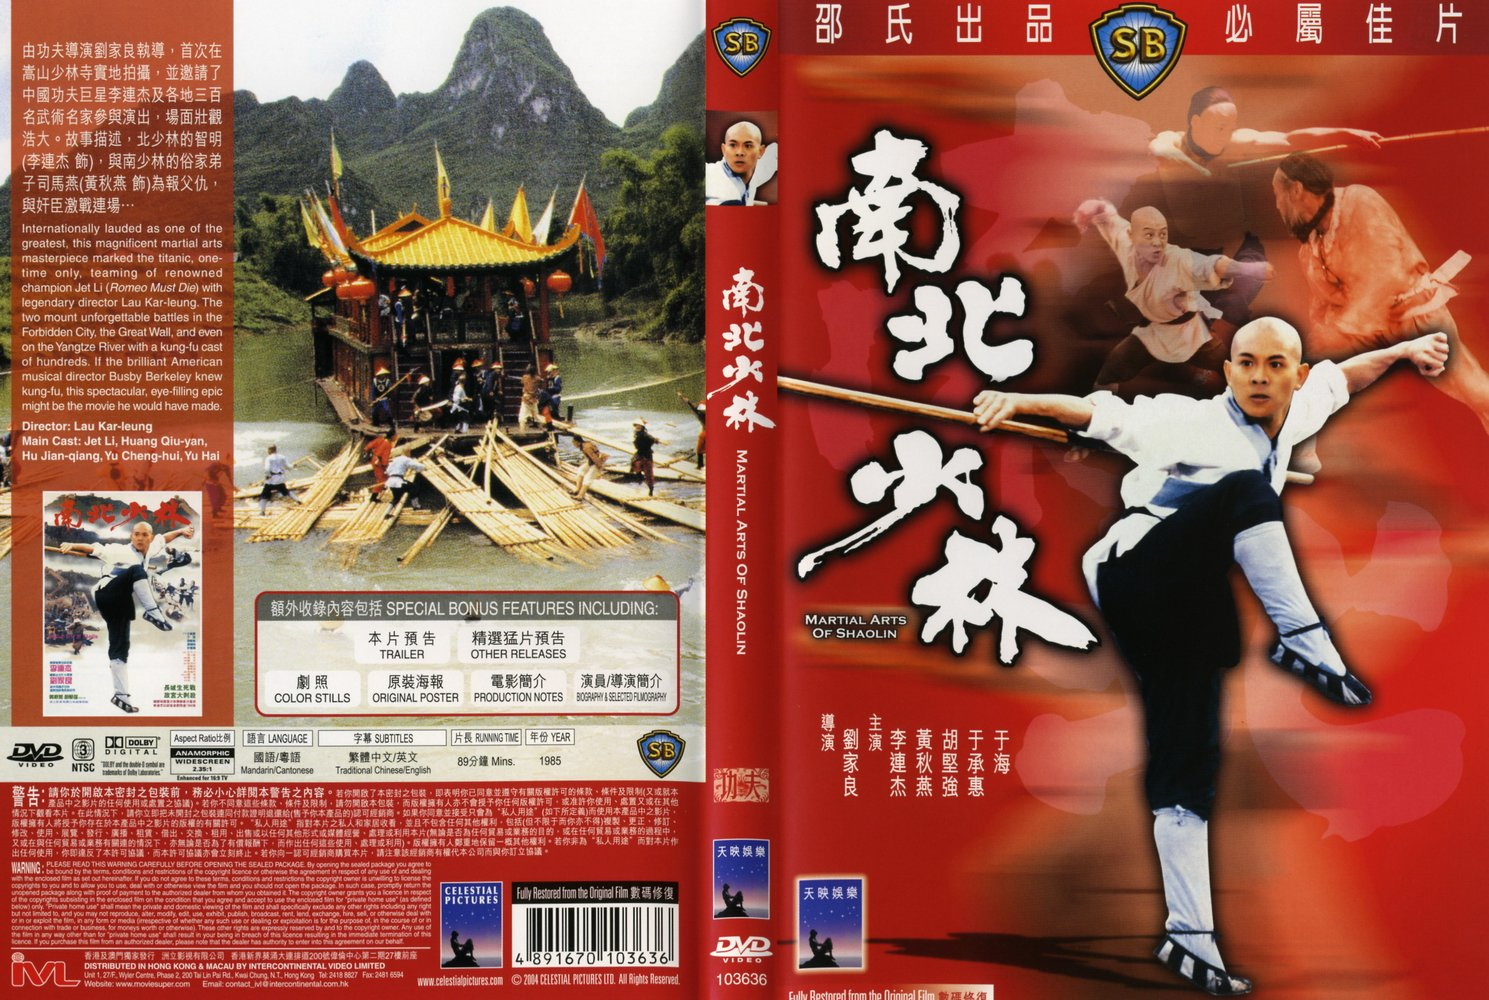 Shaolin Temple 3: Martial Arts of Shaolin Poster More at IMDbPro